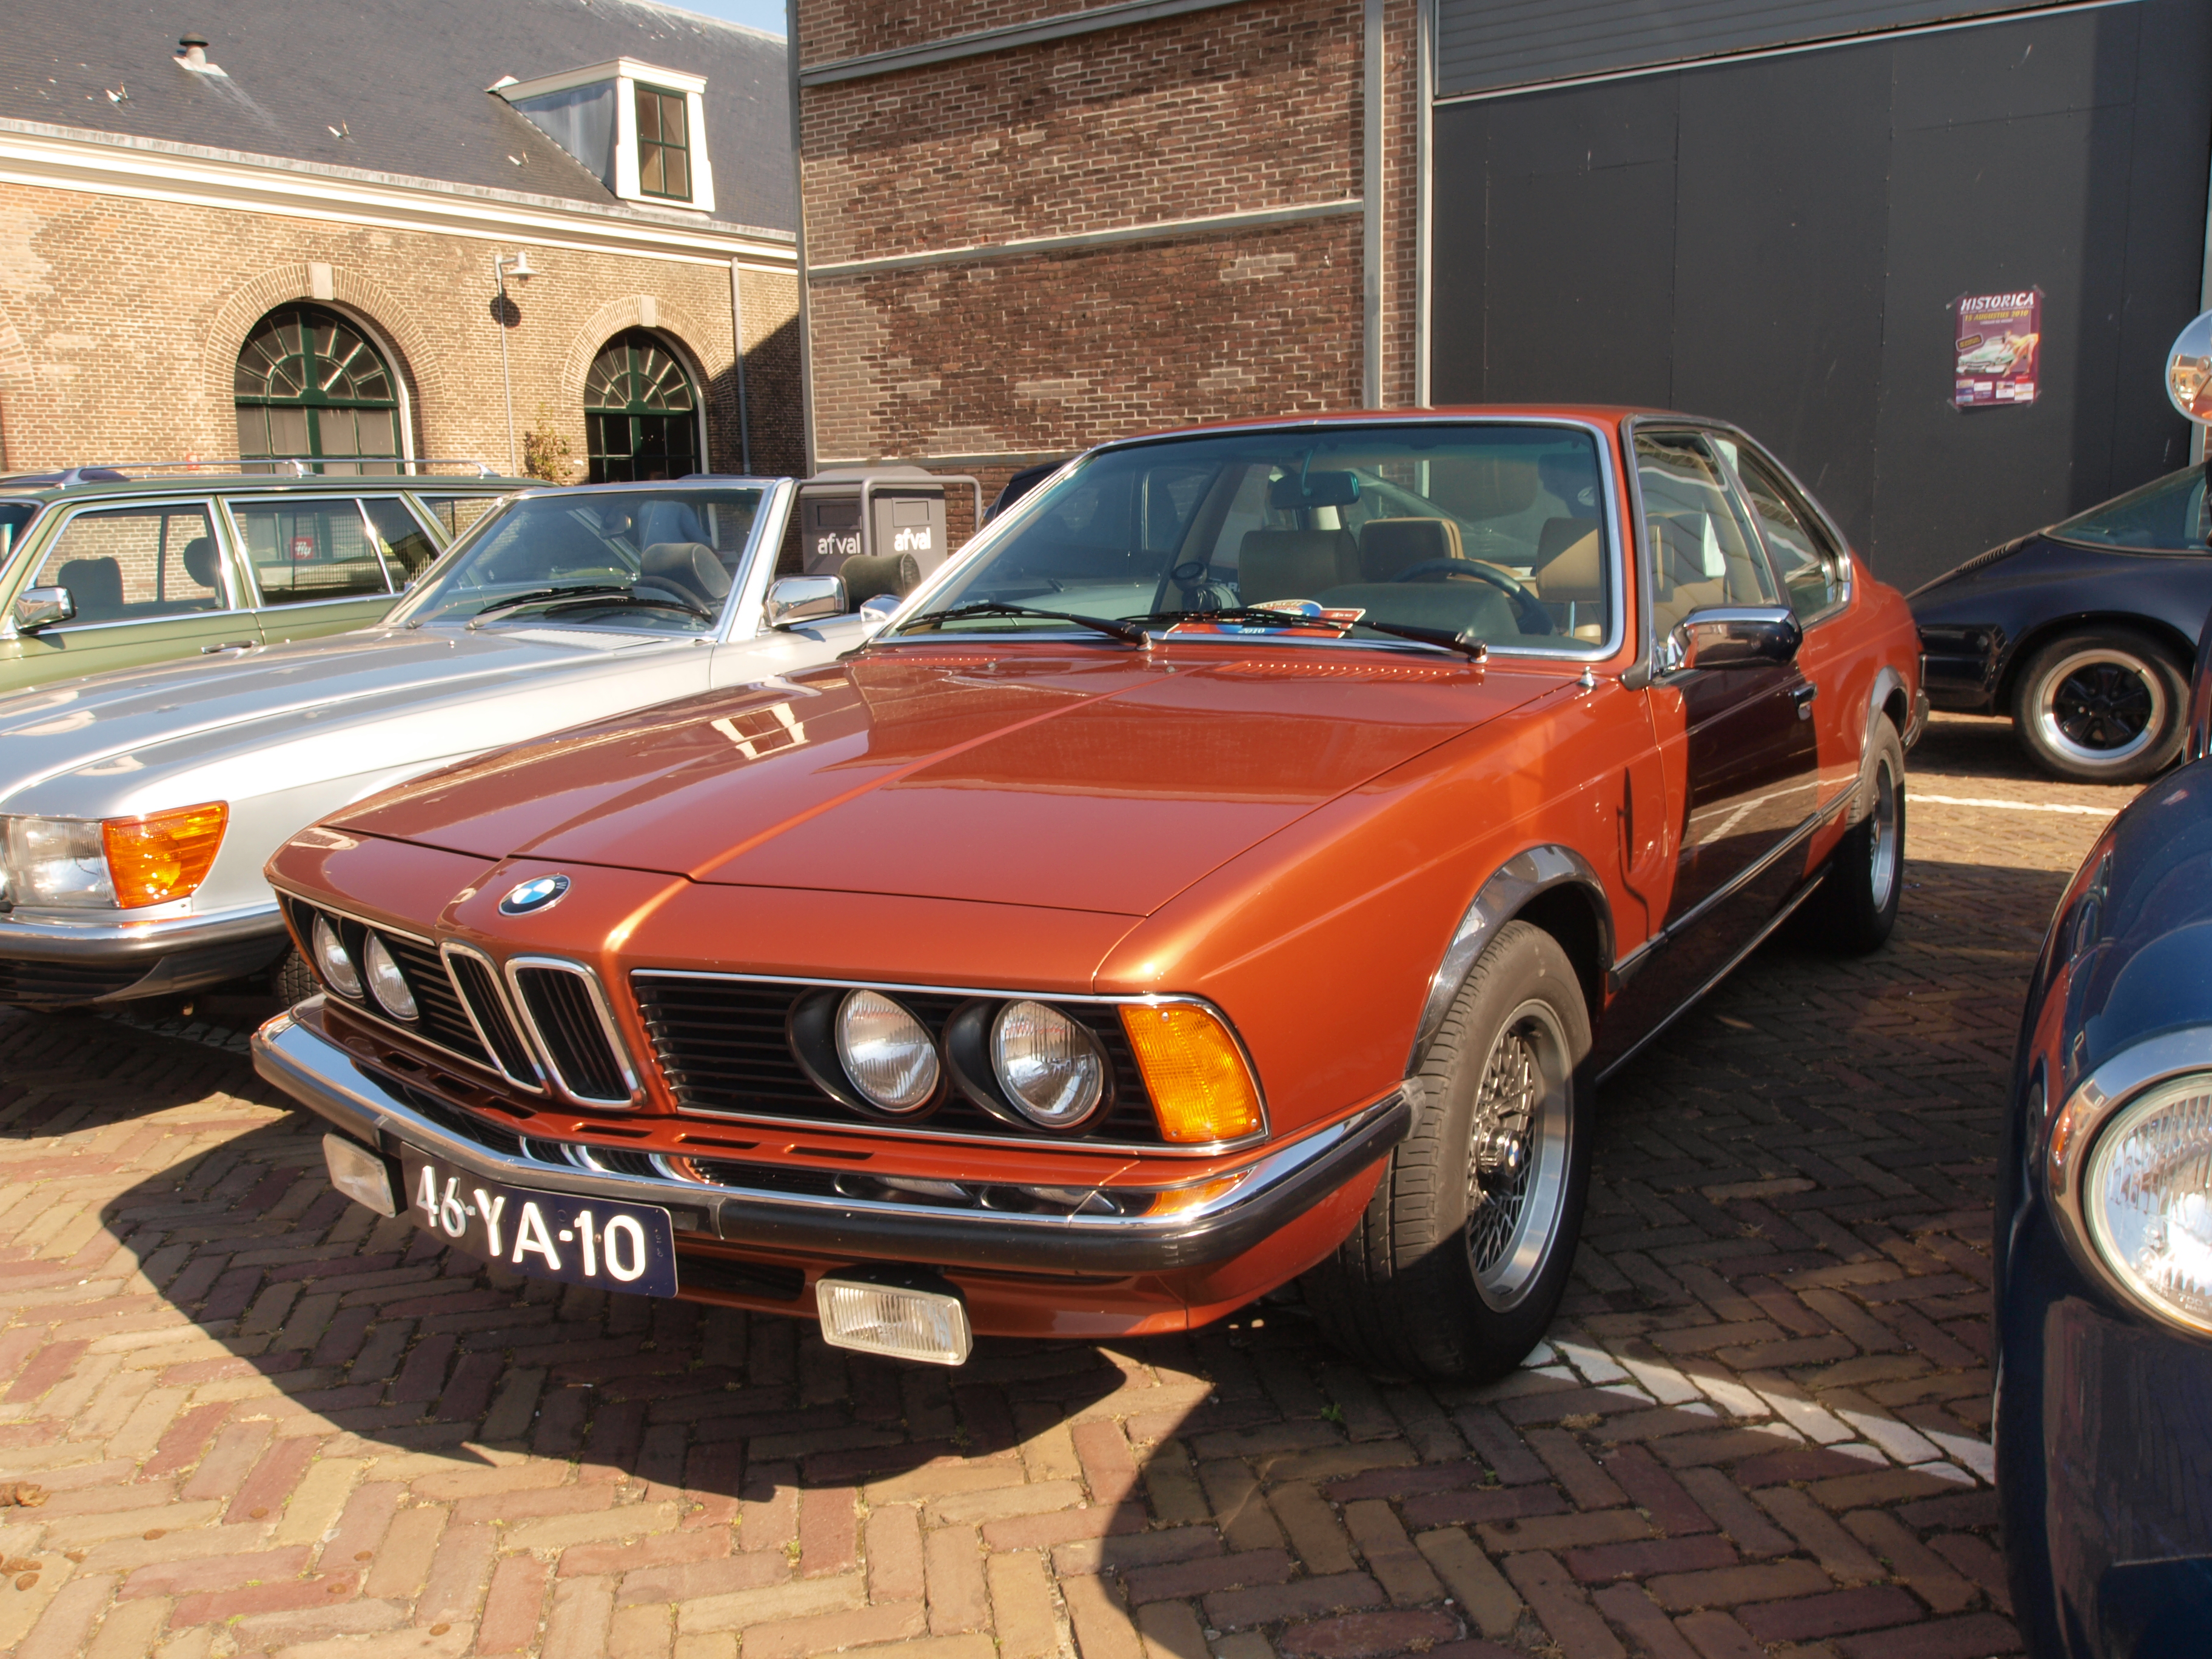 file bmw 630 cs automatic 1977 dutch licence registration 46 ya 10 pic jpg wikimedia commons. Black Bedroom Furniture Sets. Home Design Ideas